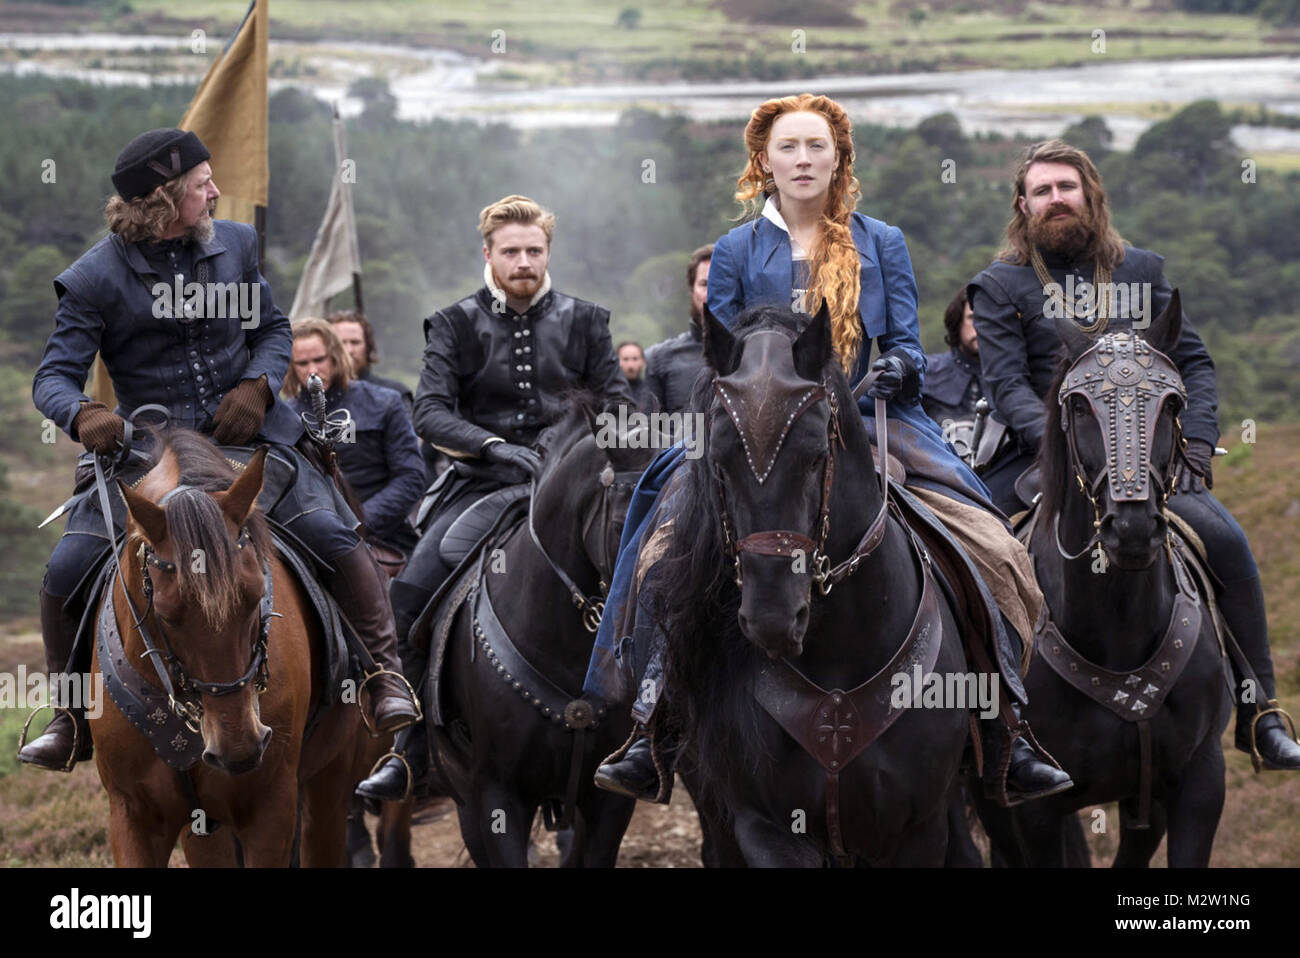 Mary Queen of Scots is an upcoming British-American historical drama film directed by Josie Rourke and written by Stock Photo